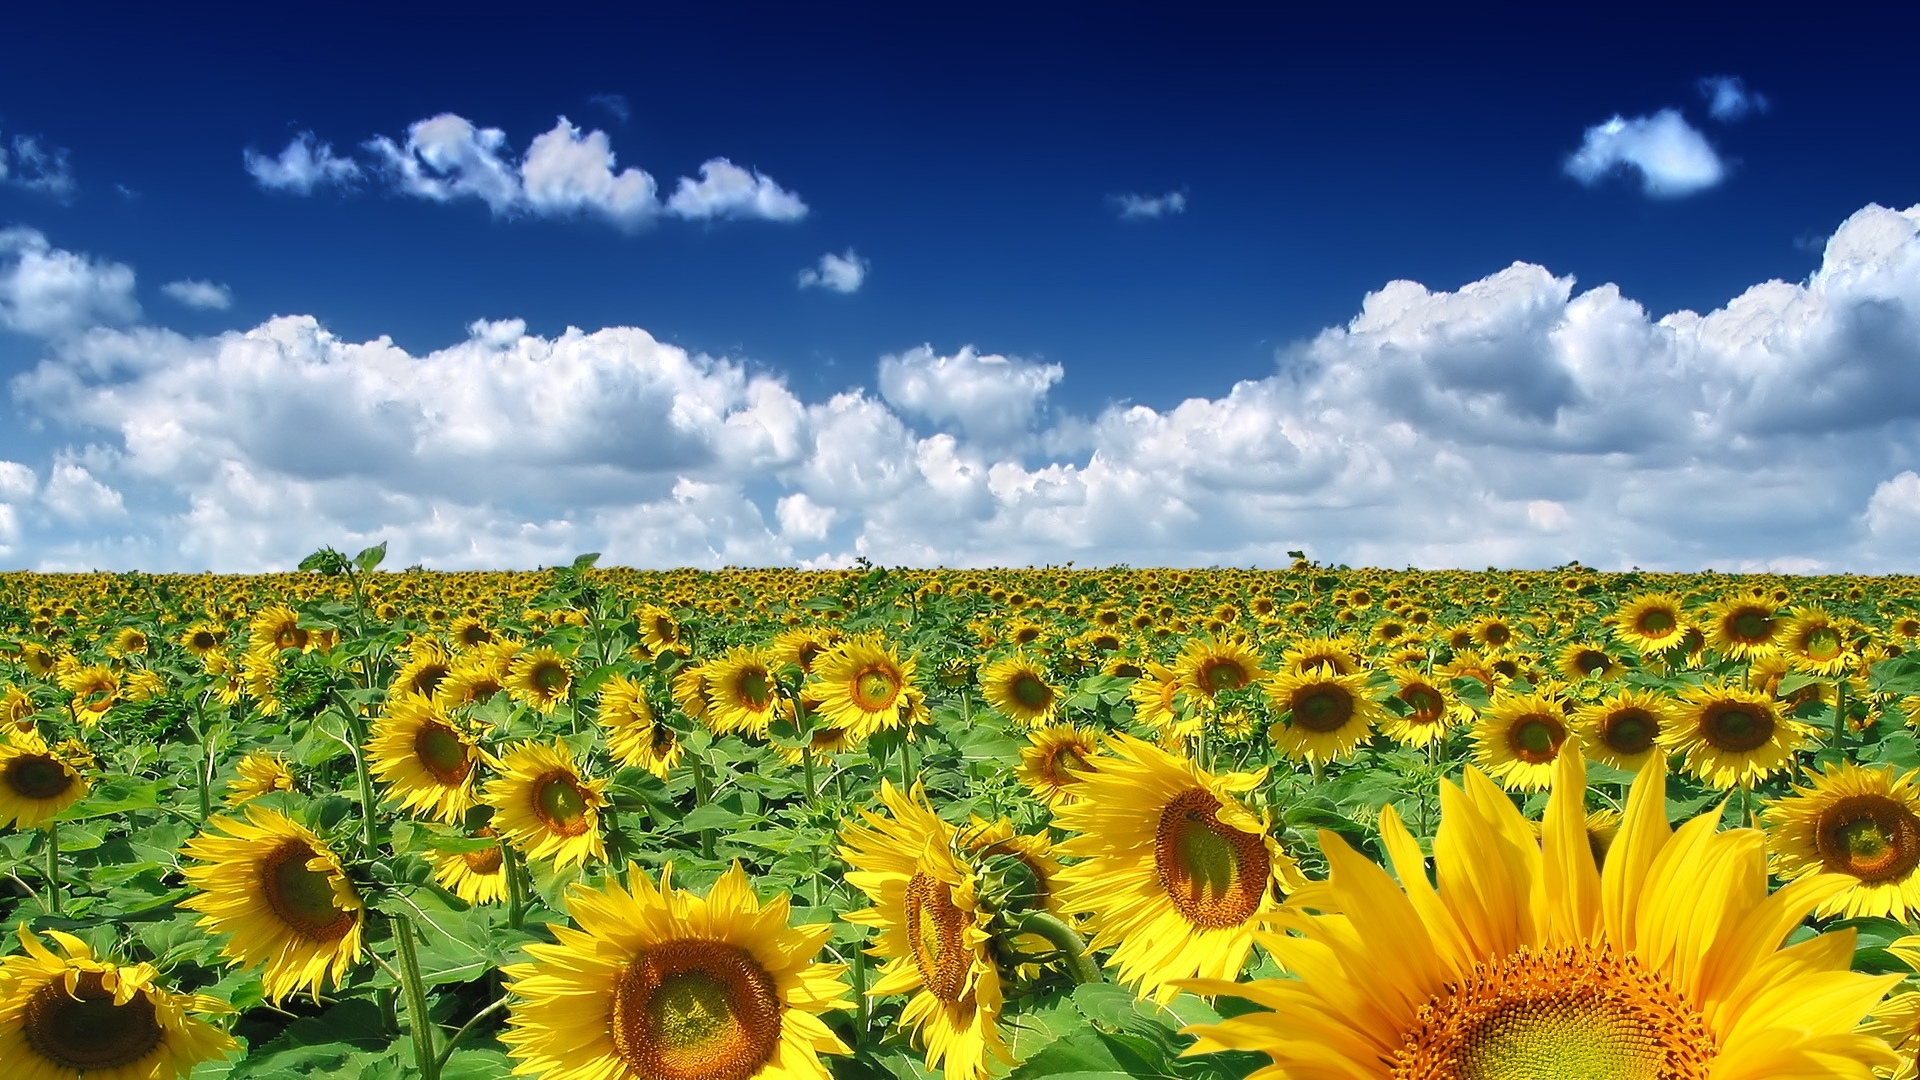 free spring wallpaper sunflowers hd wallpaper background – wackyface